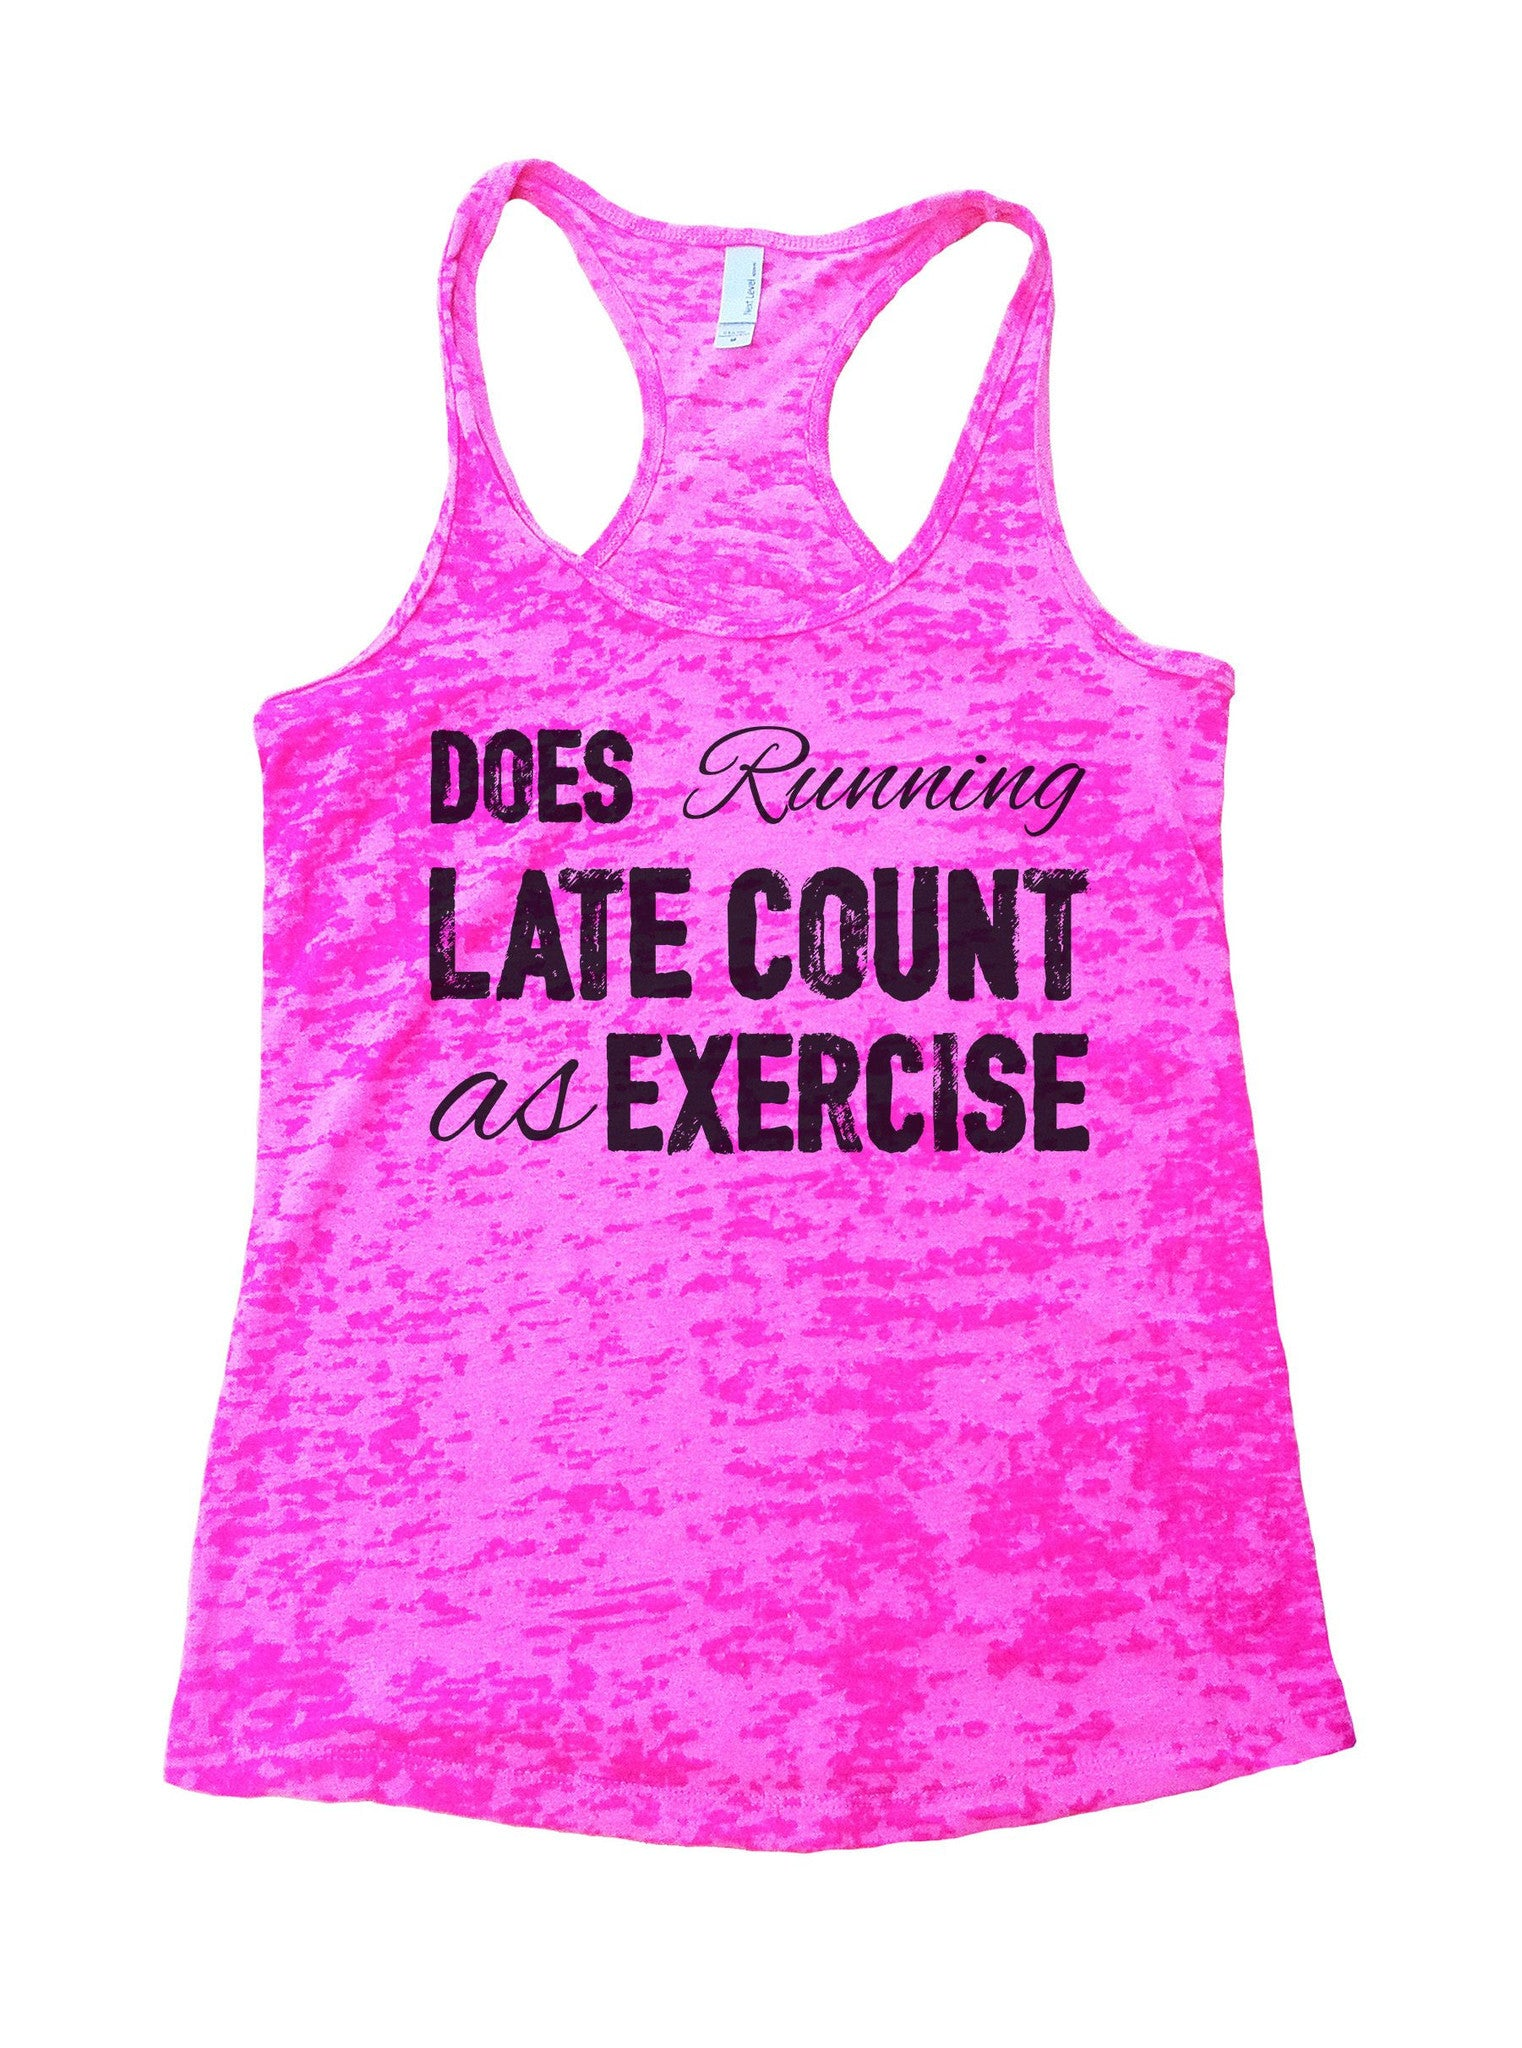 Does Running Late Count As Exercise Burnout Tank Top By BurnoutTankTops.com - 805 - Funny Shirts Tank Tops Burnouts and Triblends  - 5